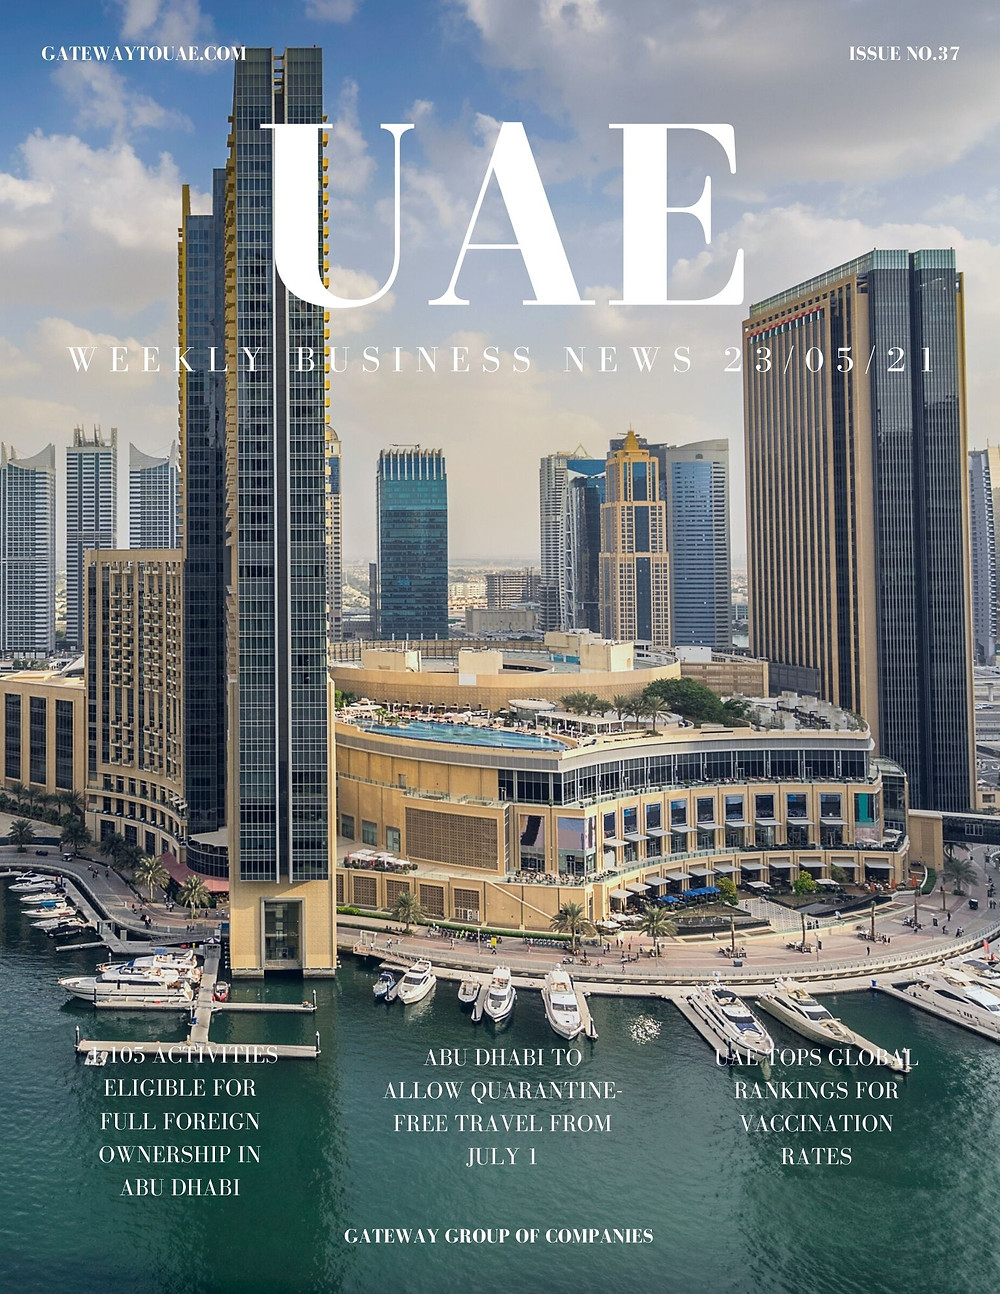 UAE weekly business news headlines 23rd May 2021 Issue 37 Gateway Group Of Companies Abu Dhabi Dubai weekly magazine company formation business setup local sponsor service agent visas company formation authority trade licence license